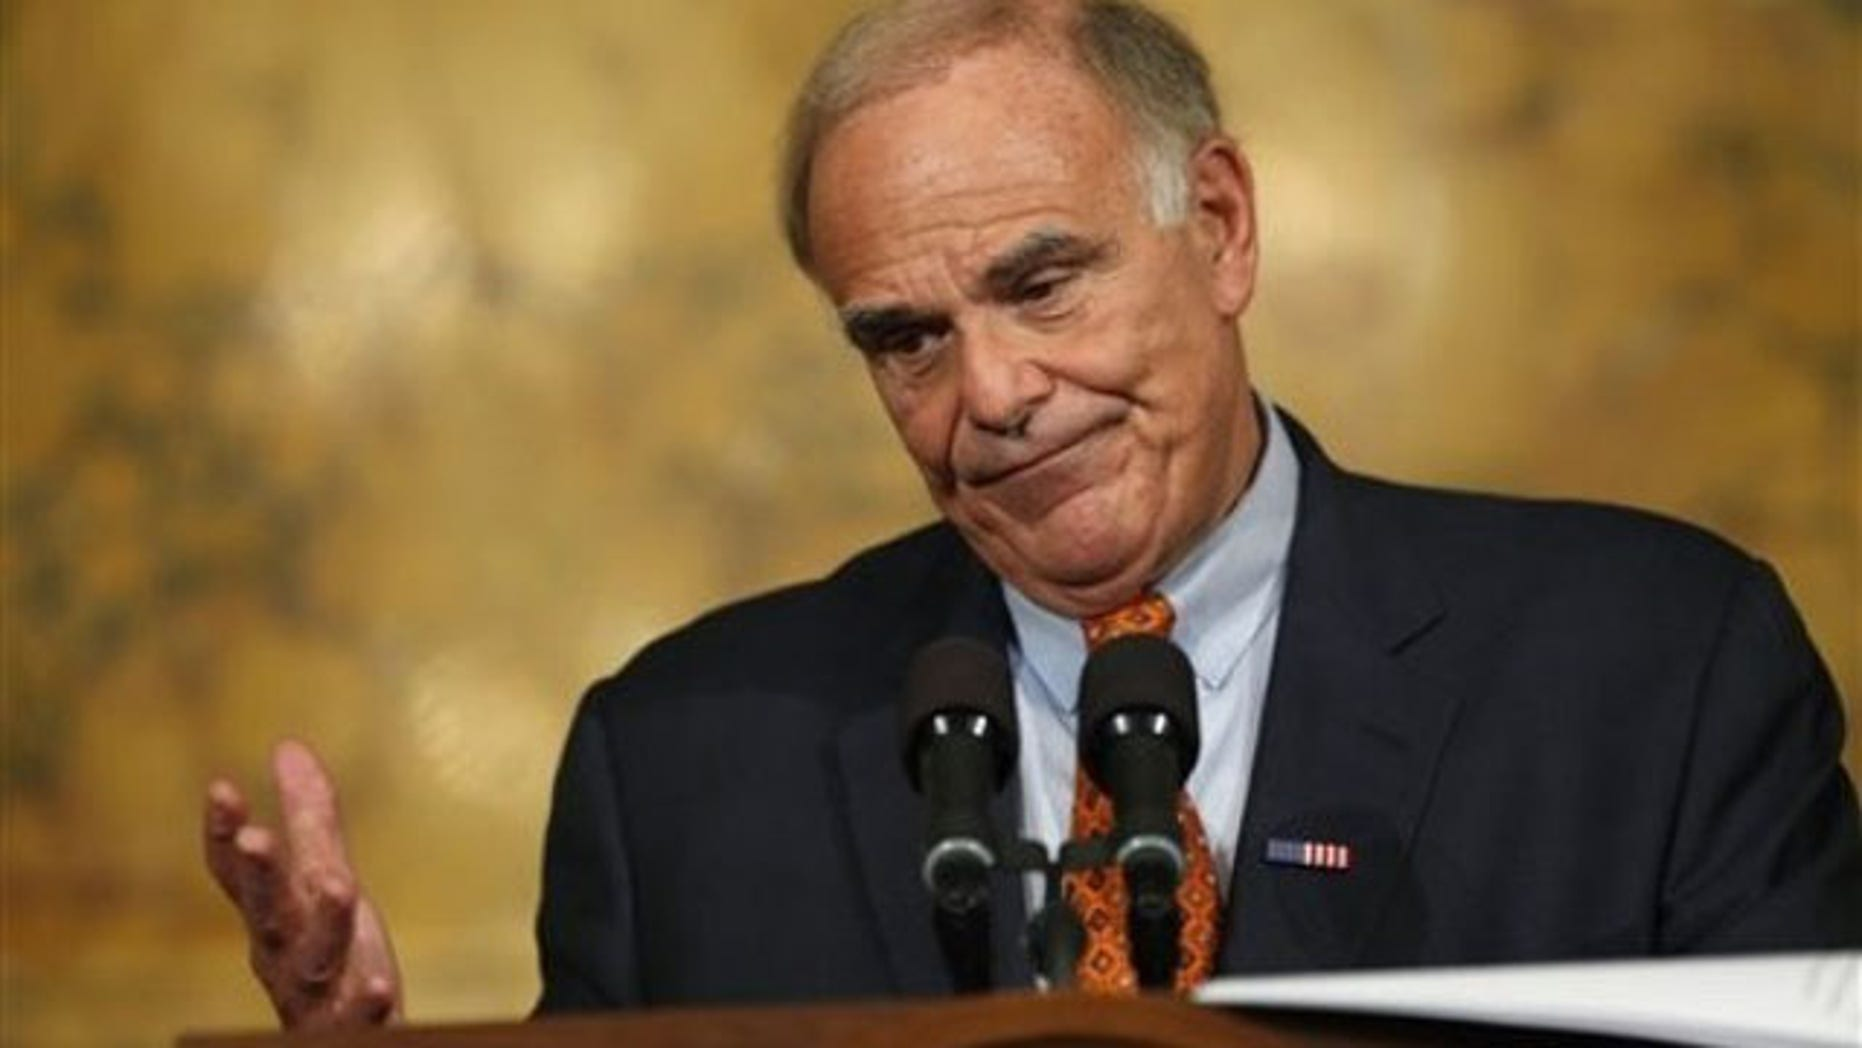 In this Jan. 7 file photo, Pennsylvania  Gov. Ed Rendell speaks during a news conference at the Capitol in Harrisburg, Pa. (AP Photo)